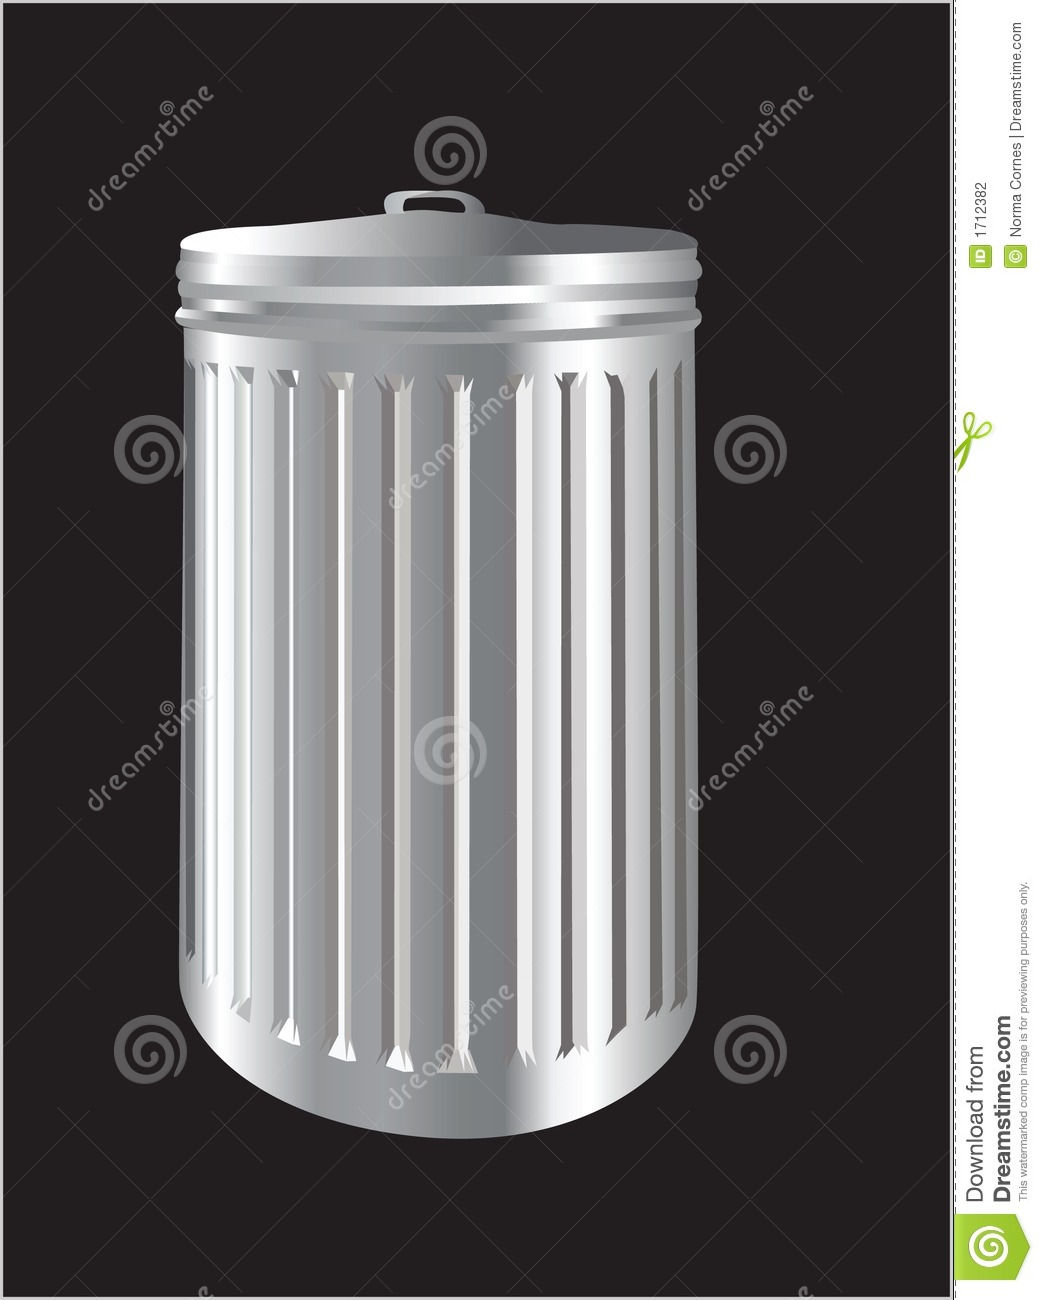 Aluminium Garbage Cans : Aluminum trash bin or can stock photography image